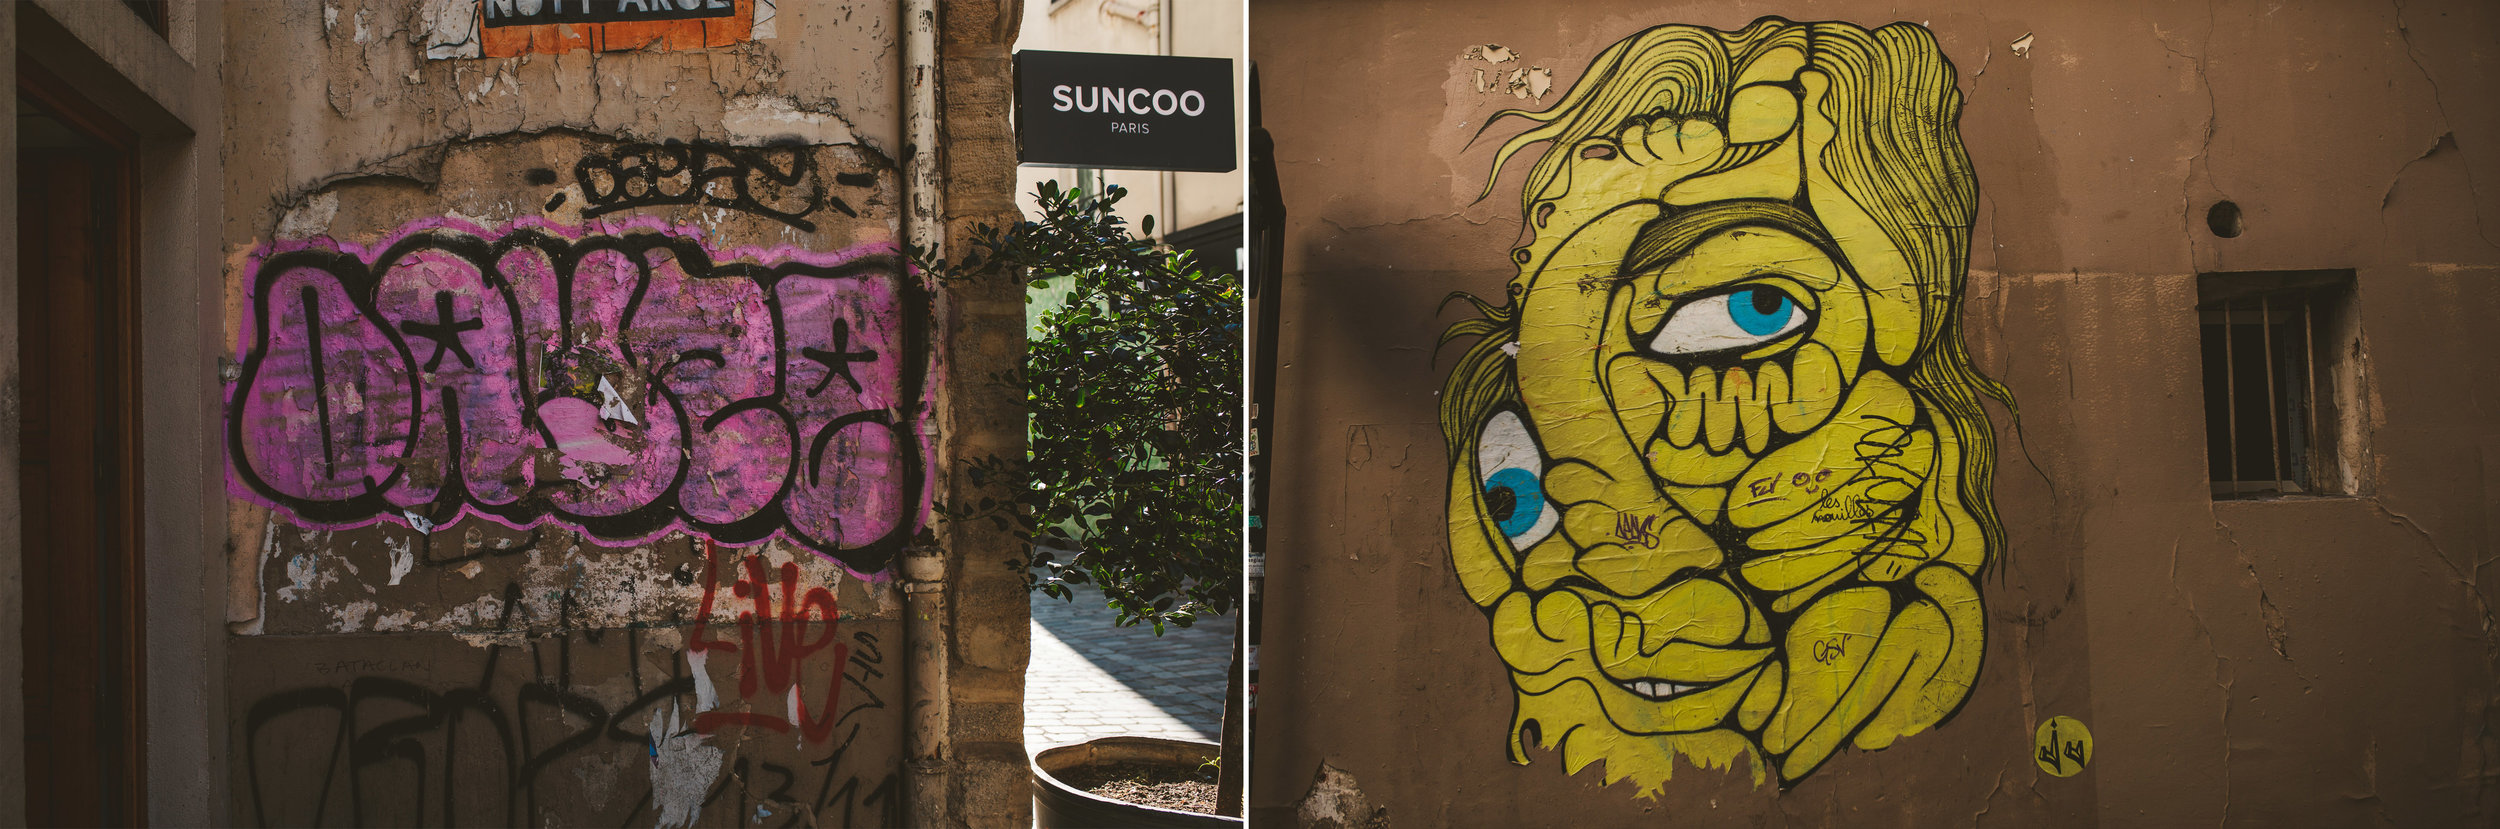 The graffiti art is really something to behold and adds such a layer of colour throughout the city.